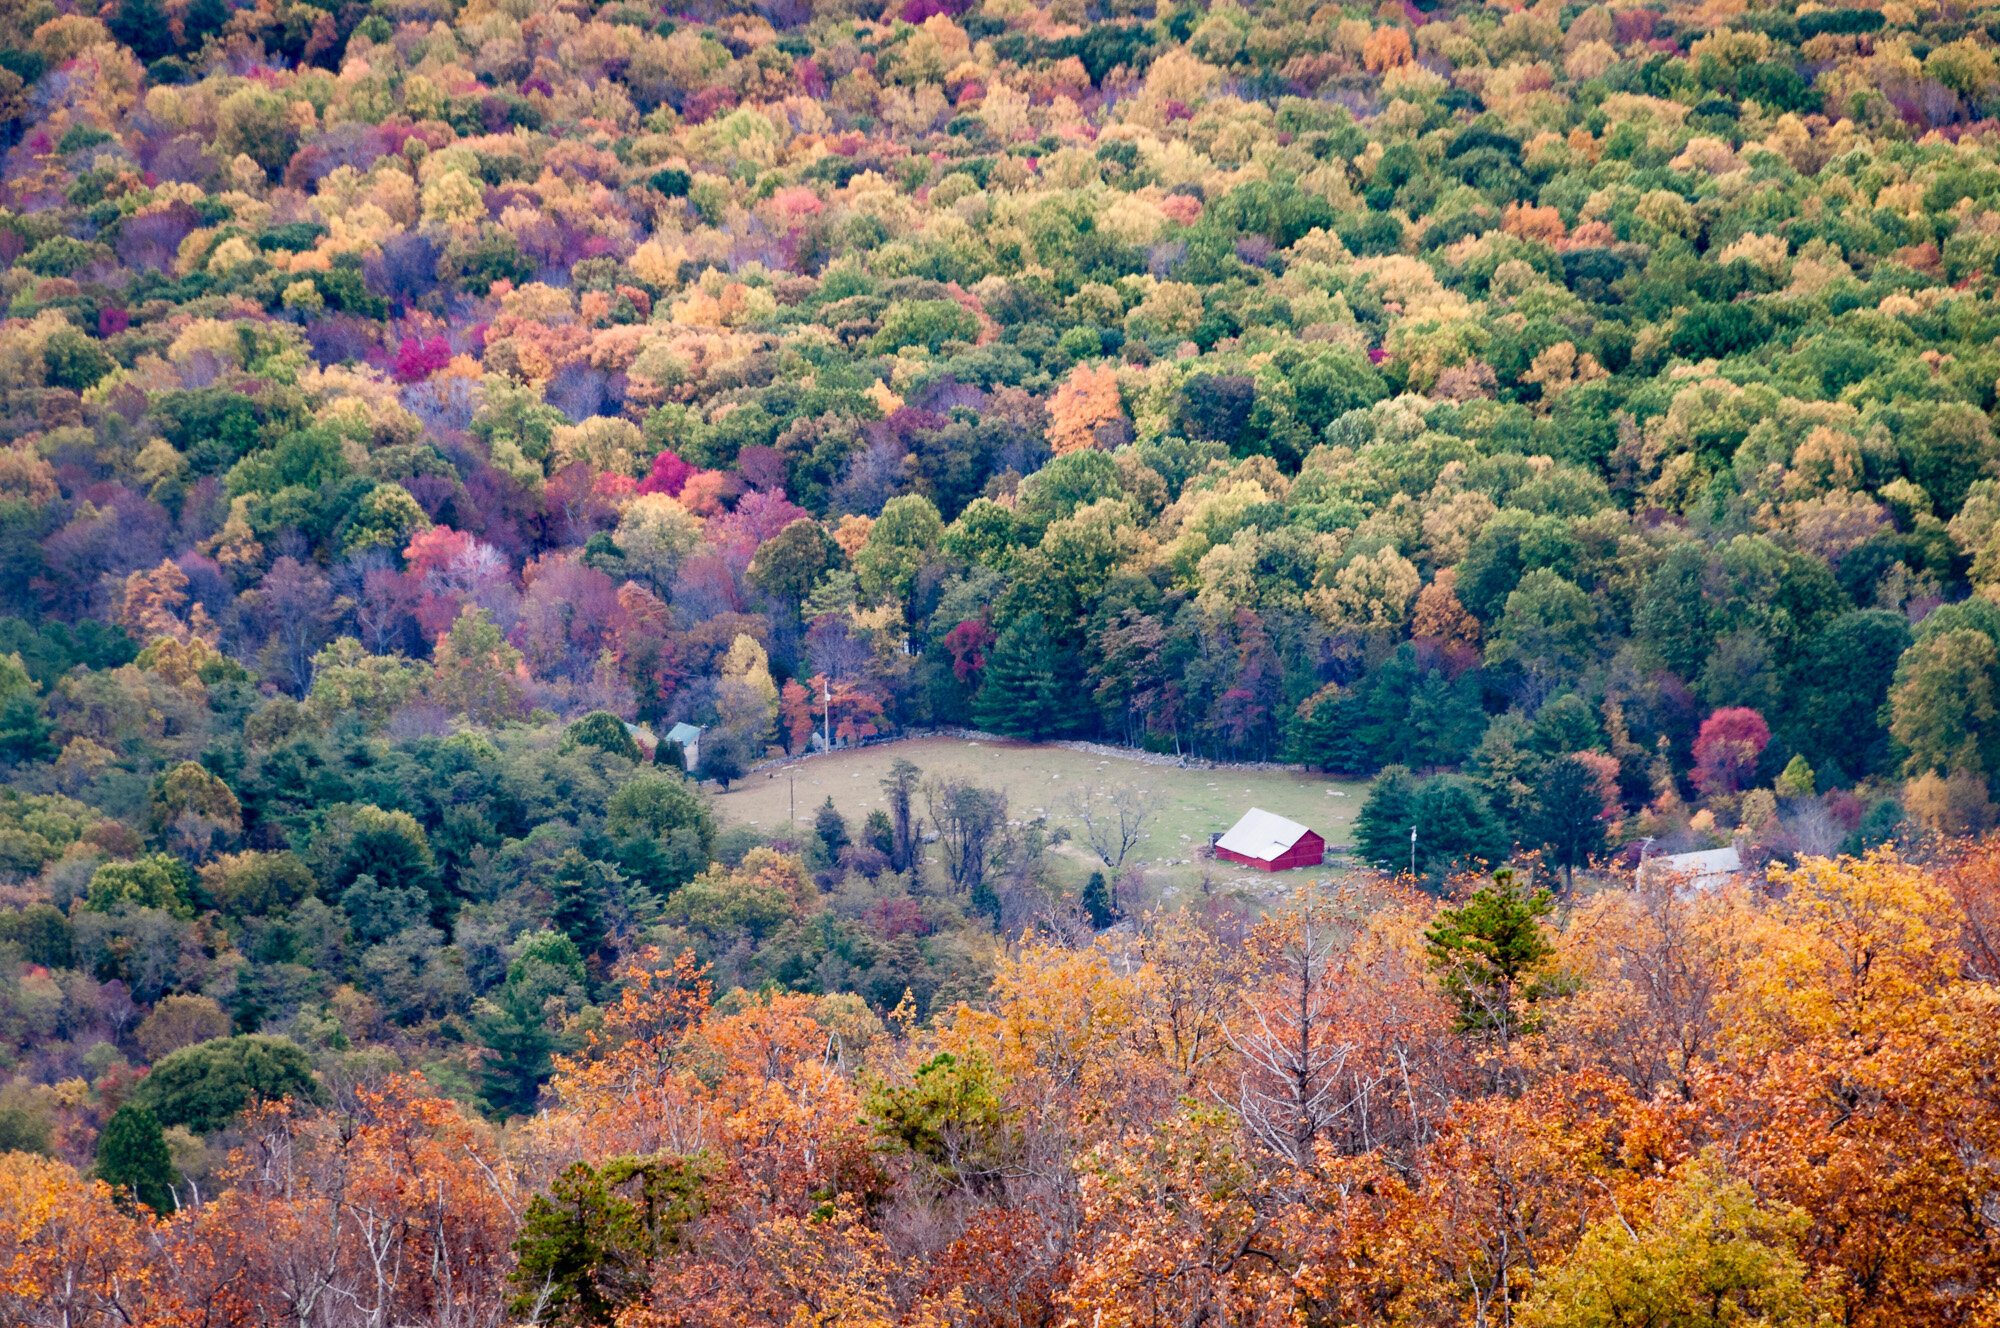 Down in the Valley, a view of a farm amongst the foliage.